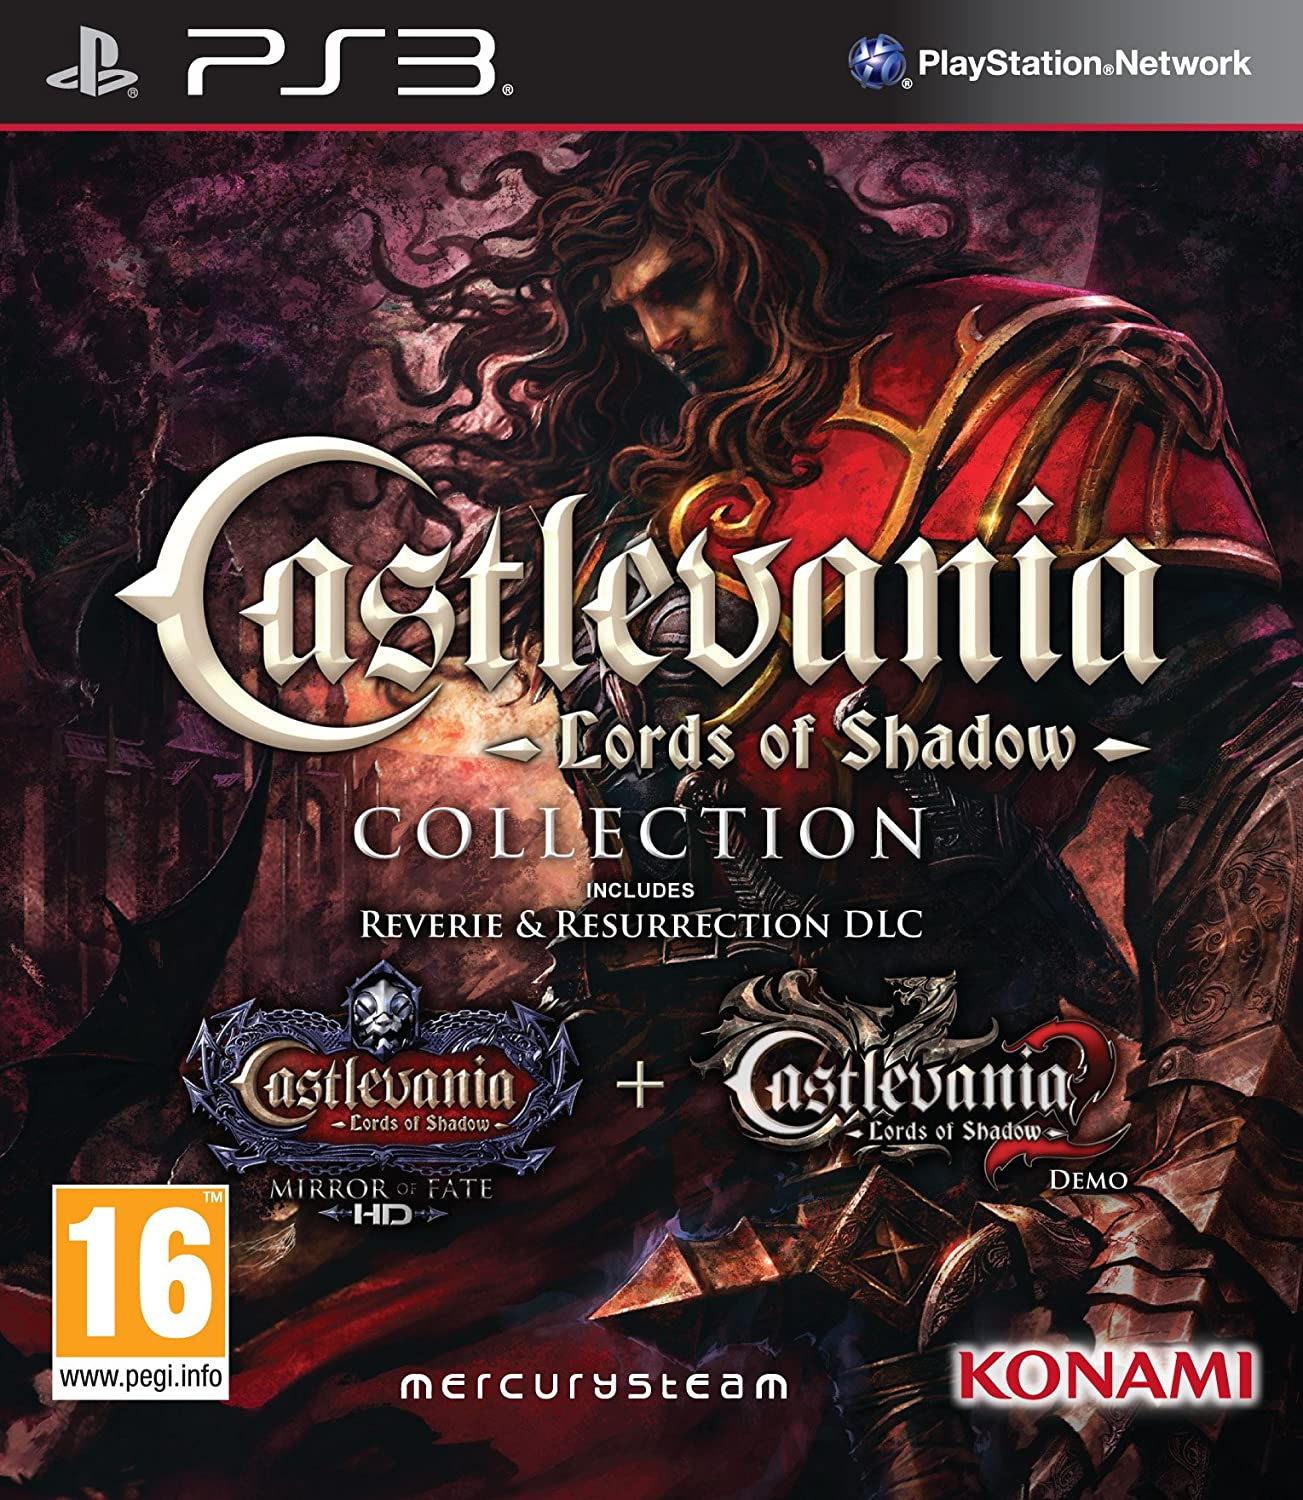 Castlevania Lords of Shadow 1 et 2 918jq0X77IL._SL1500_